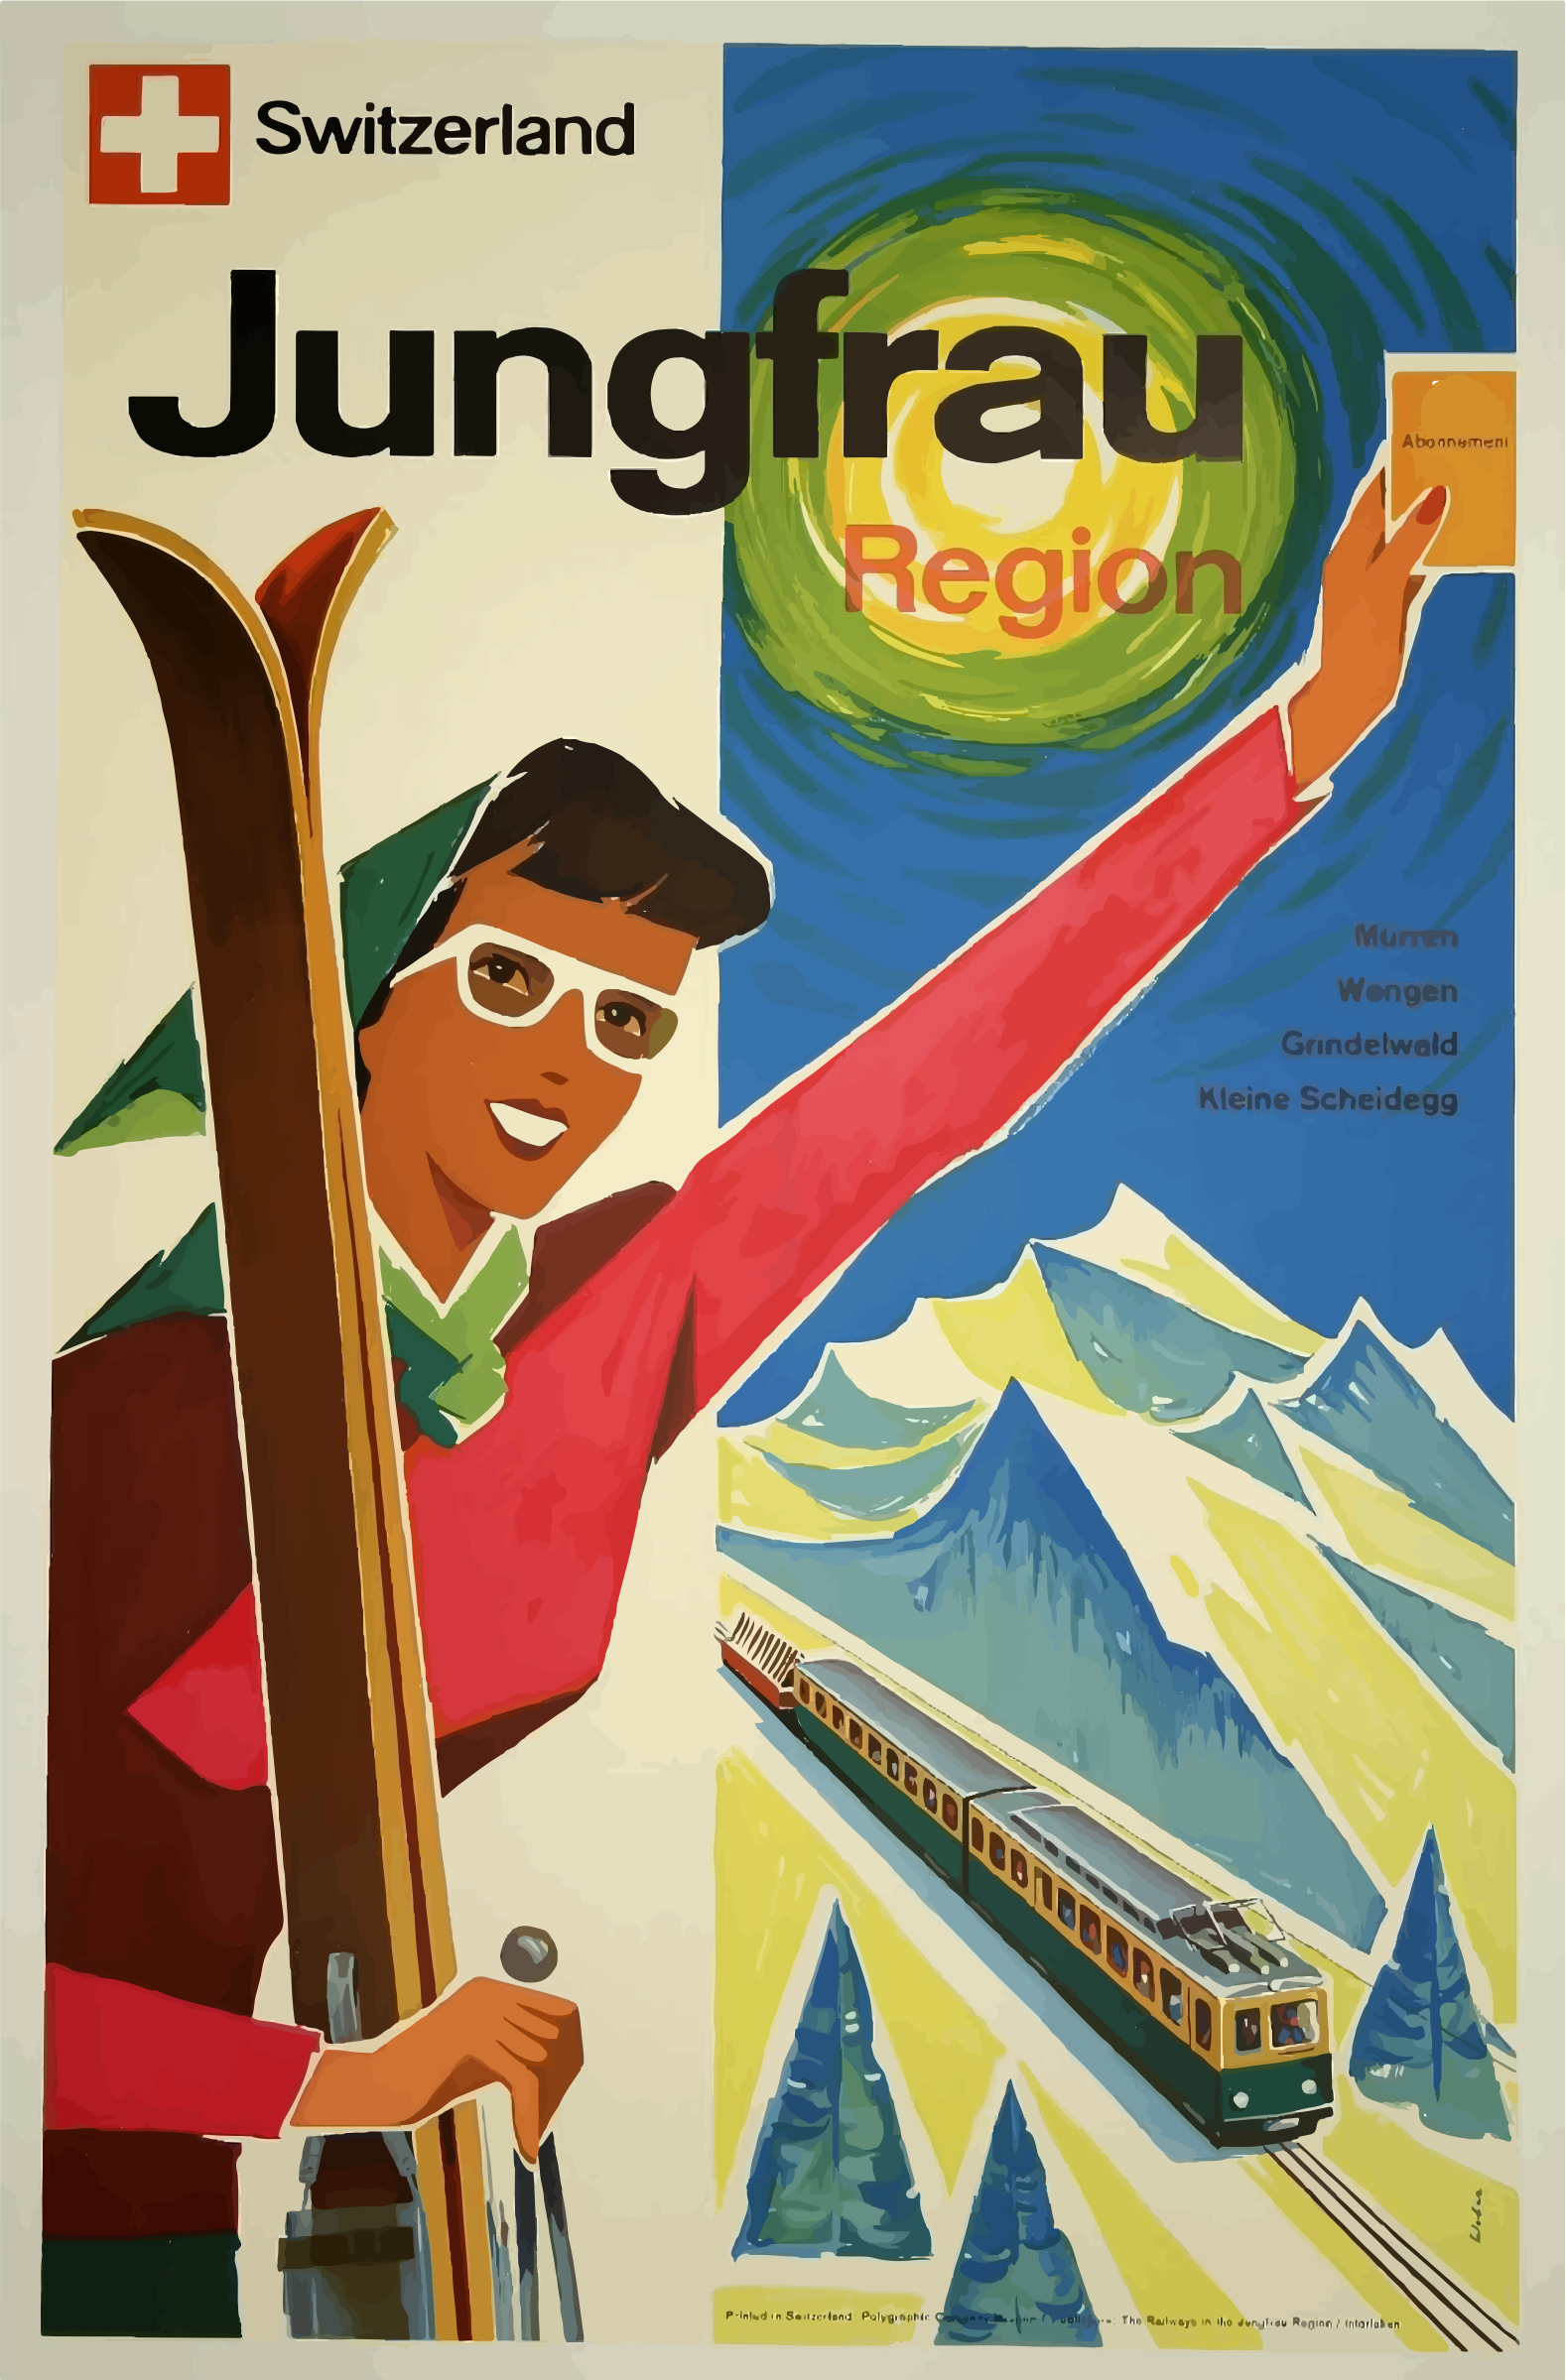 Vintage Travel Poster Switzerland 4 by GDJ